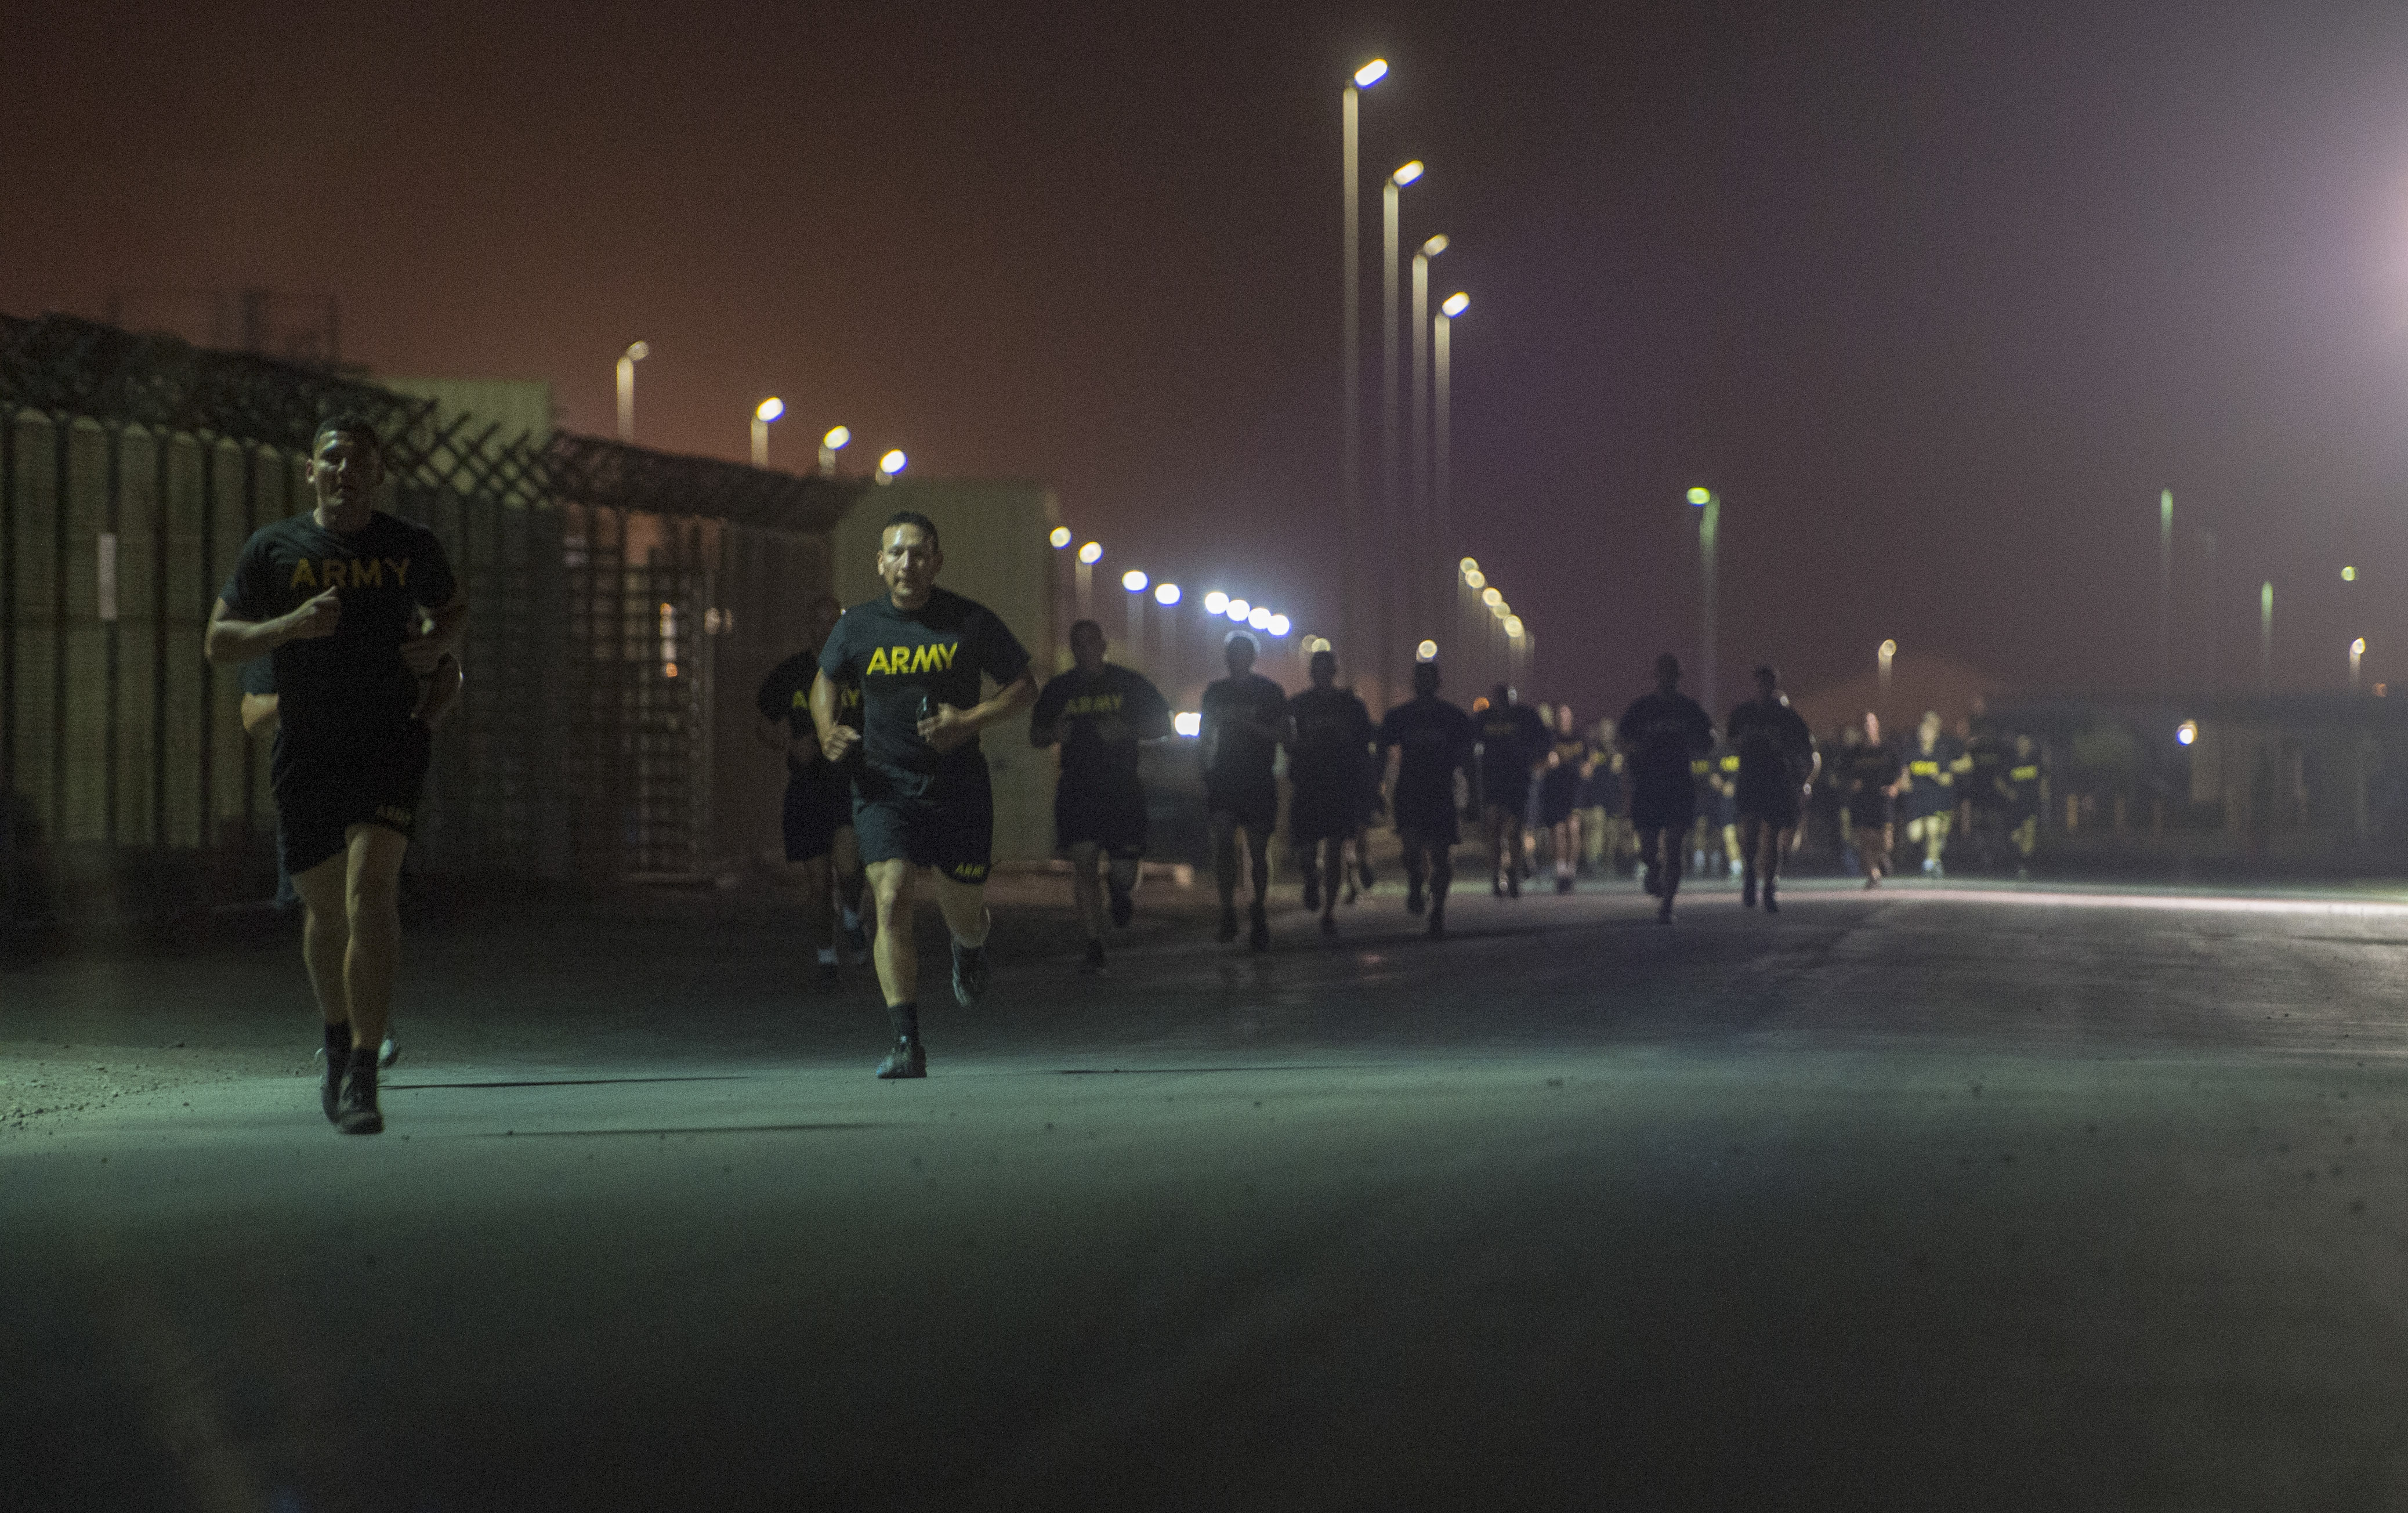 U.S. Army Soldiers assigned to Combined Joint Task Force - Horn of Africa run during the Army Physical Fitness Test portion of an Expert Infantryman Badge evaluation at Camp Lemonnier, Djibouti, Jan. 29, 2018. After two weeks of training and five days of testing, 50 Soldiers completed the process to earn the coveted special skills badge that requires Soldiers to perform an Army Physical Fitness Test, day and night land navigation, a 12-mile forced march, and 30 individual tasks covering weapons, medical, and security patrol skills. (U.S. Air Force photo by Staff Sgt. Timothy Moore)